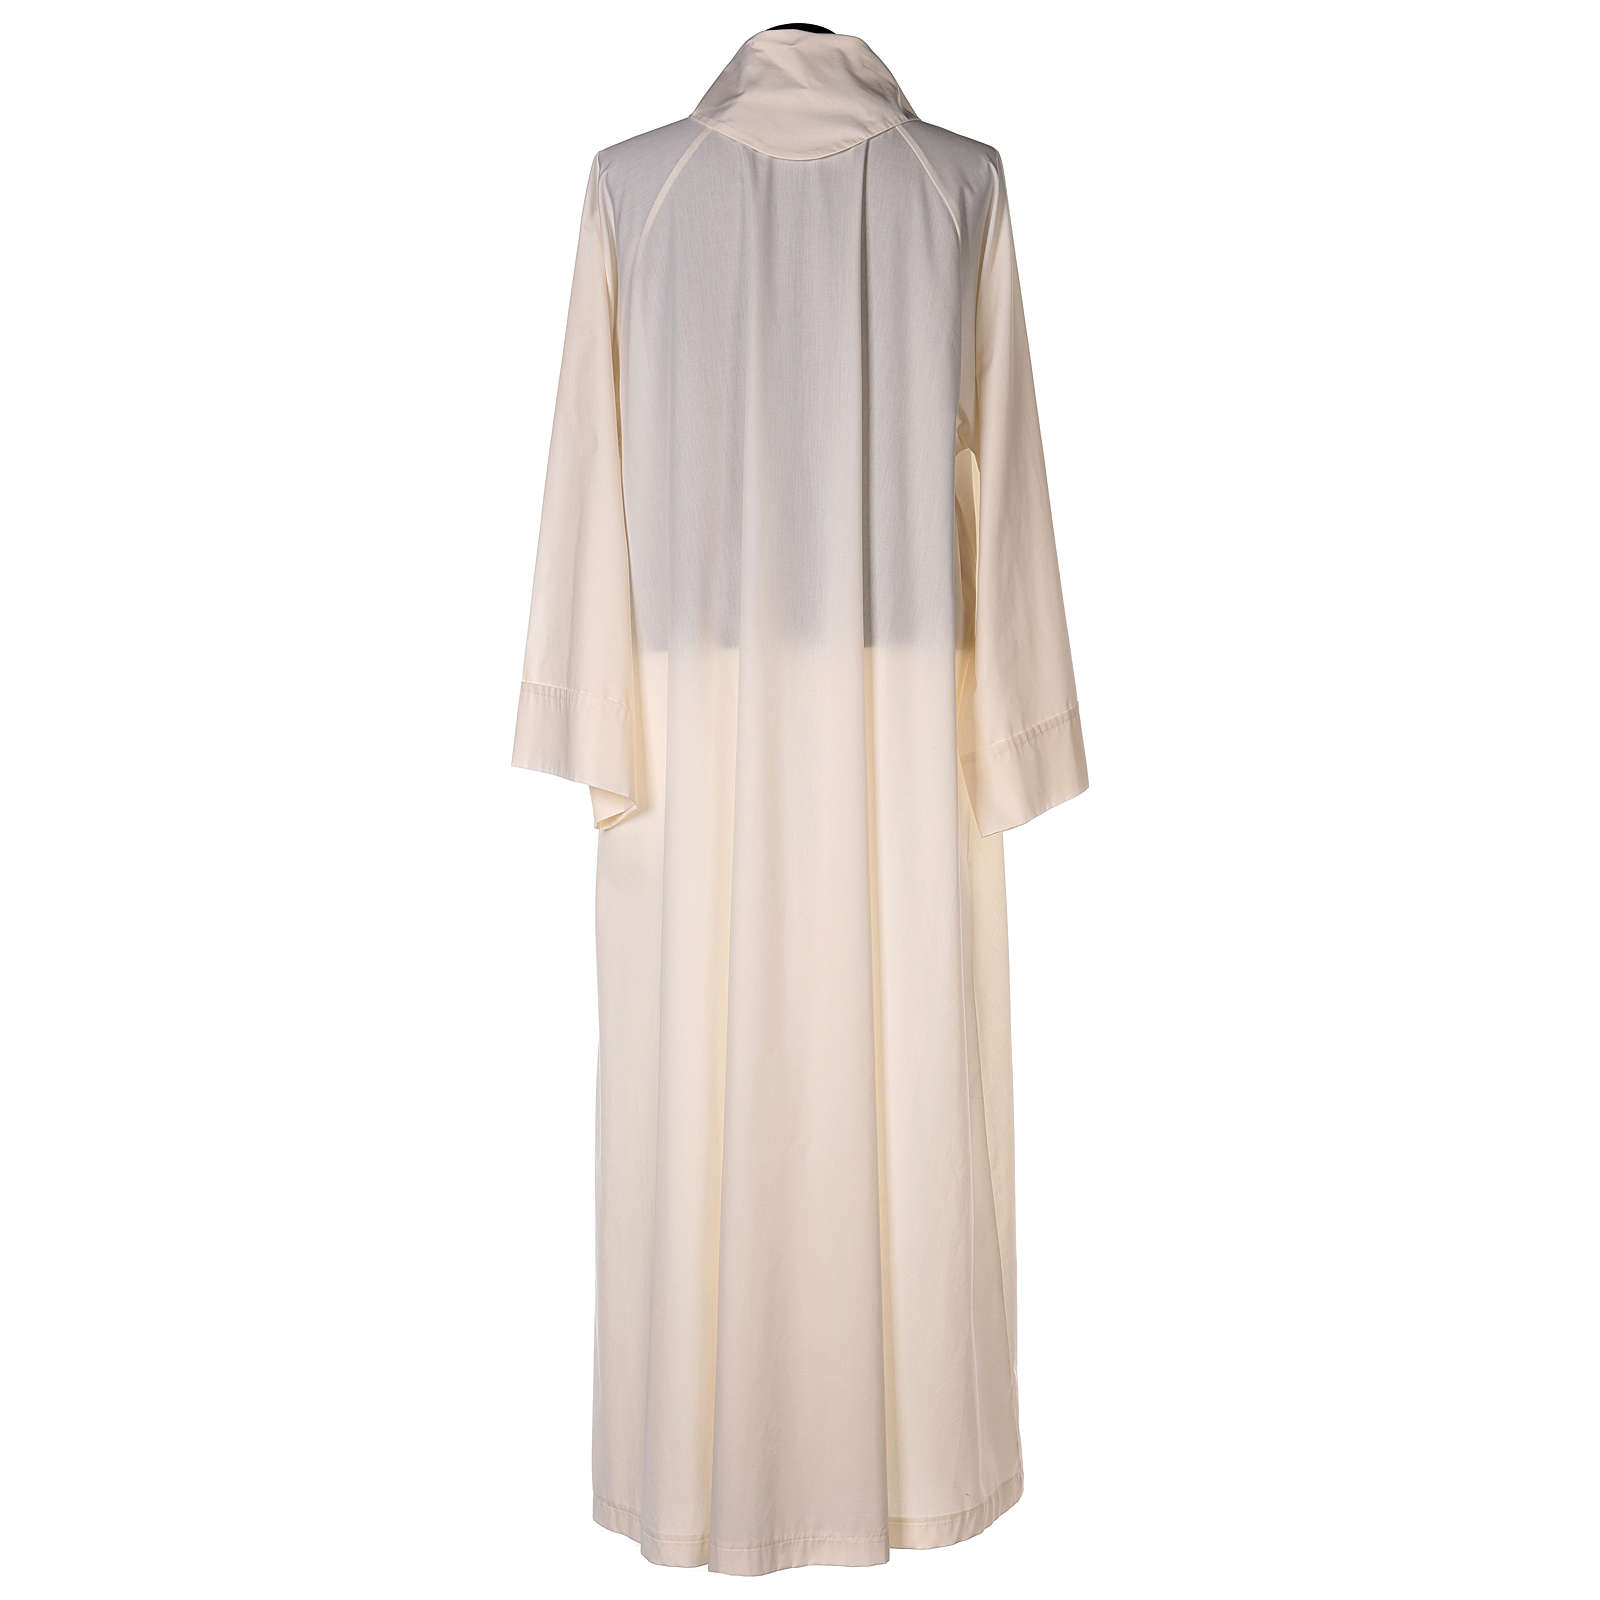 Ivory alb in cotton polyester, flared with false hood 4